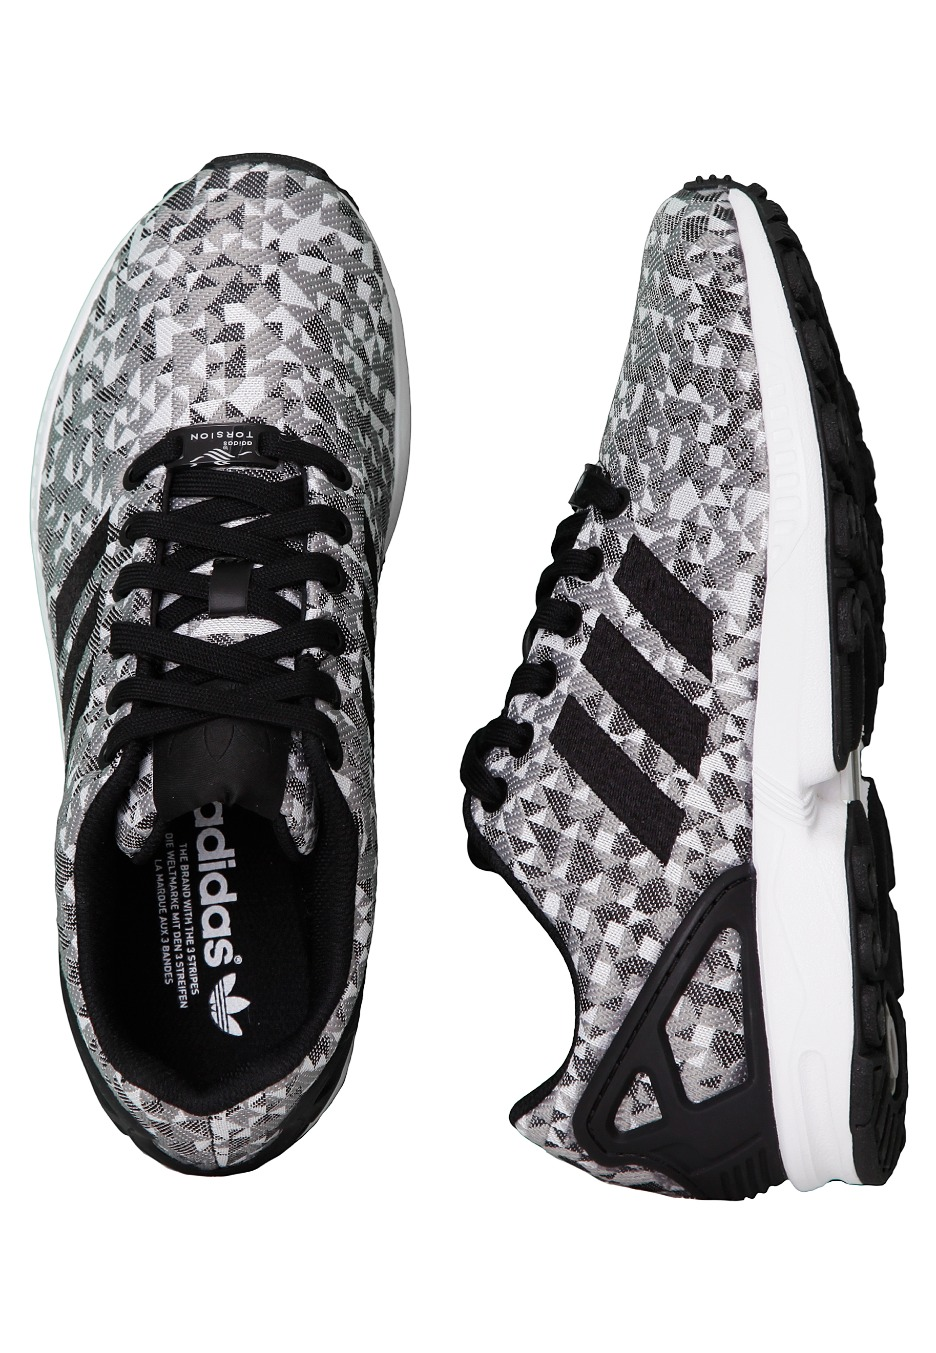 purchase cheap 8255f 144c7 Adidas - ZX Flux Weave Ftwr White Core Black Charcoal Solid Grey - Shoes -  Impericon.com UK